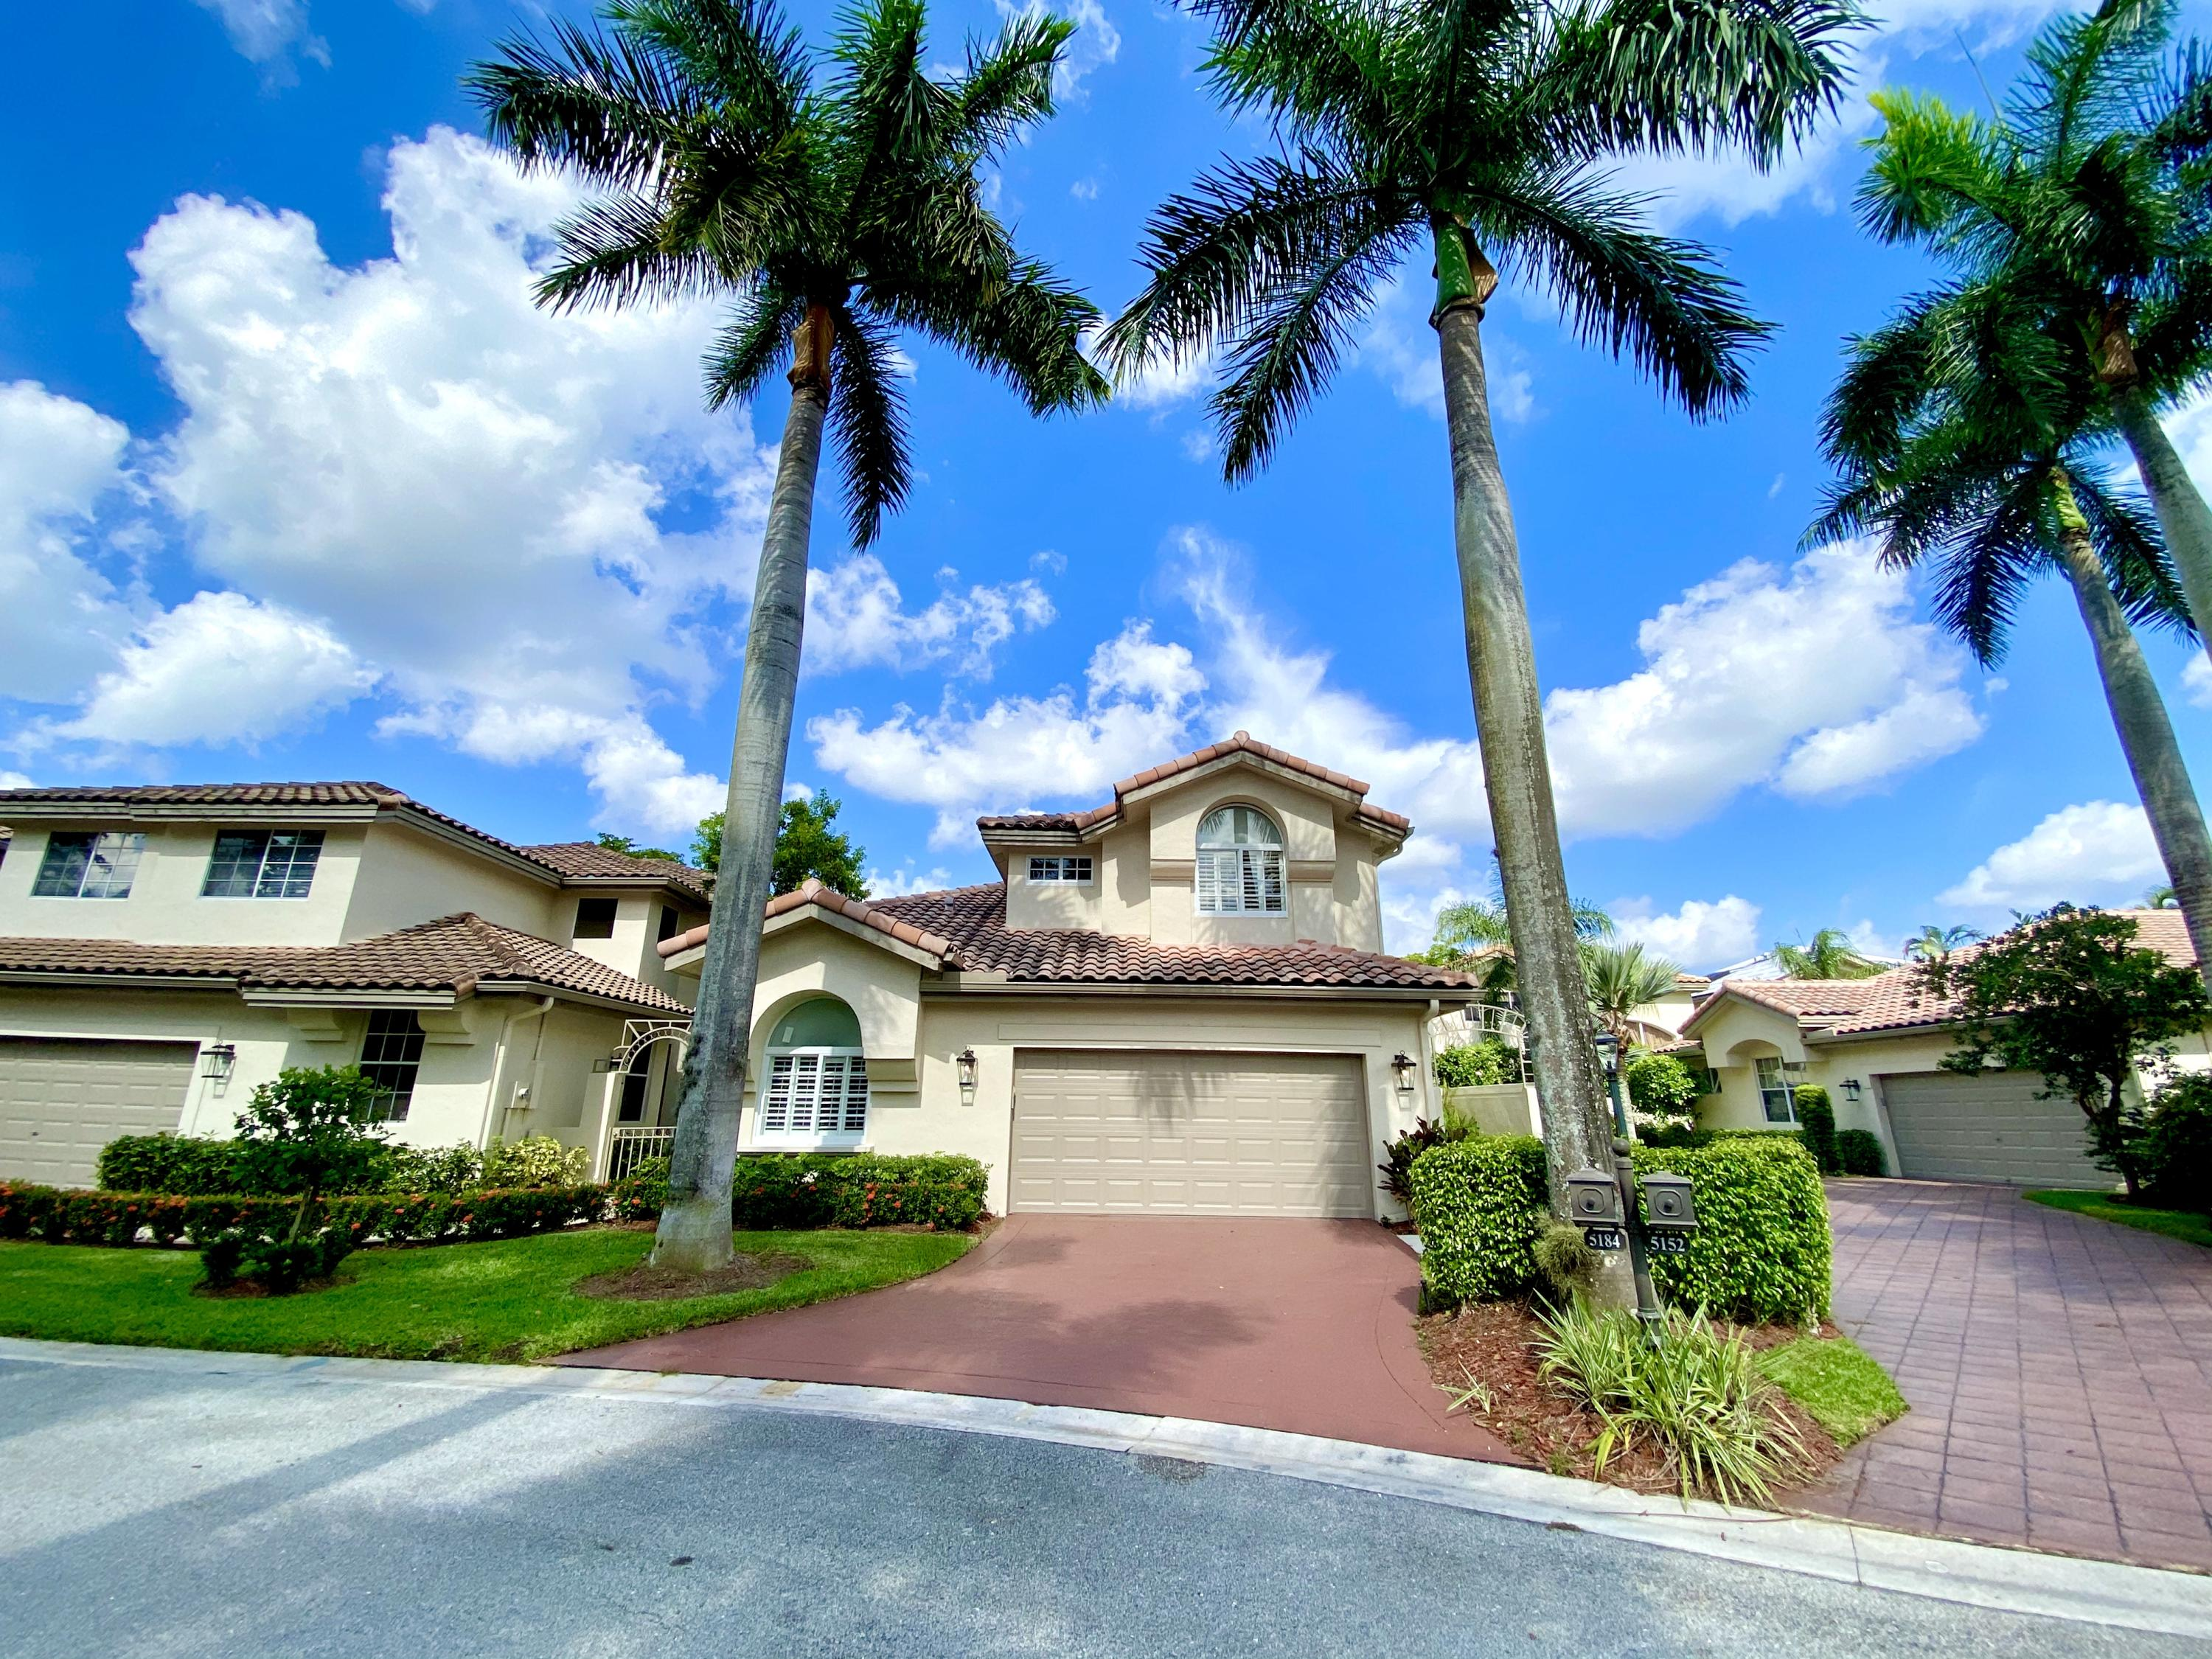 Details for 5184 26th Circle Nw, Boca Raton, FL 33496